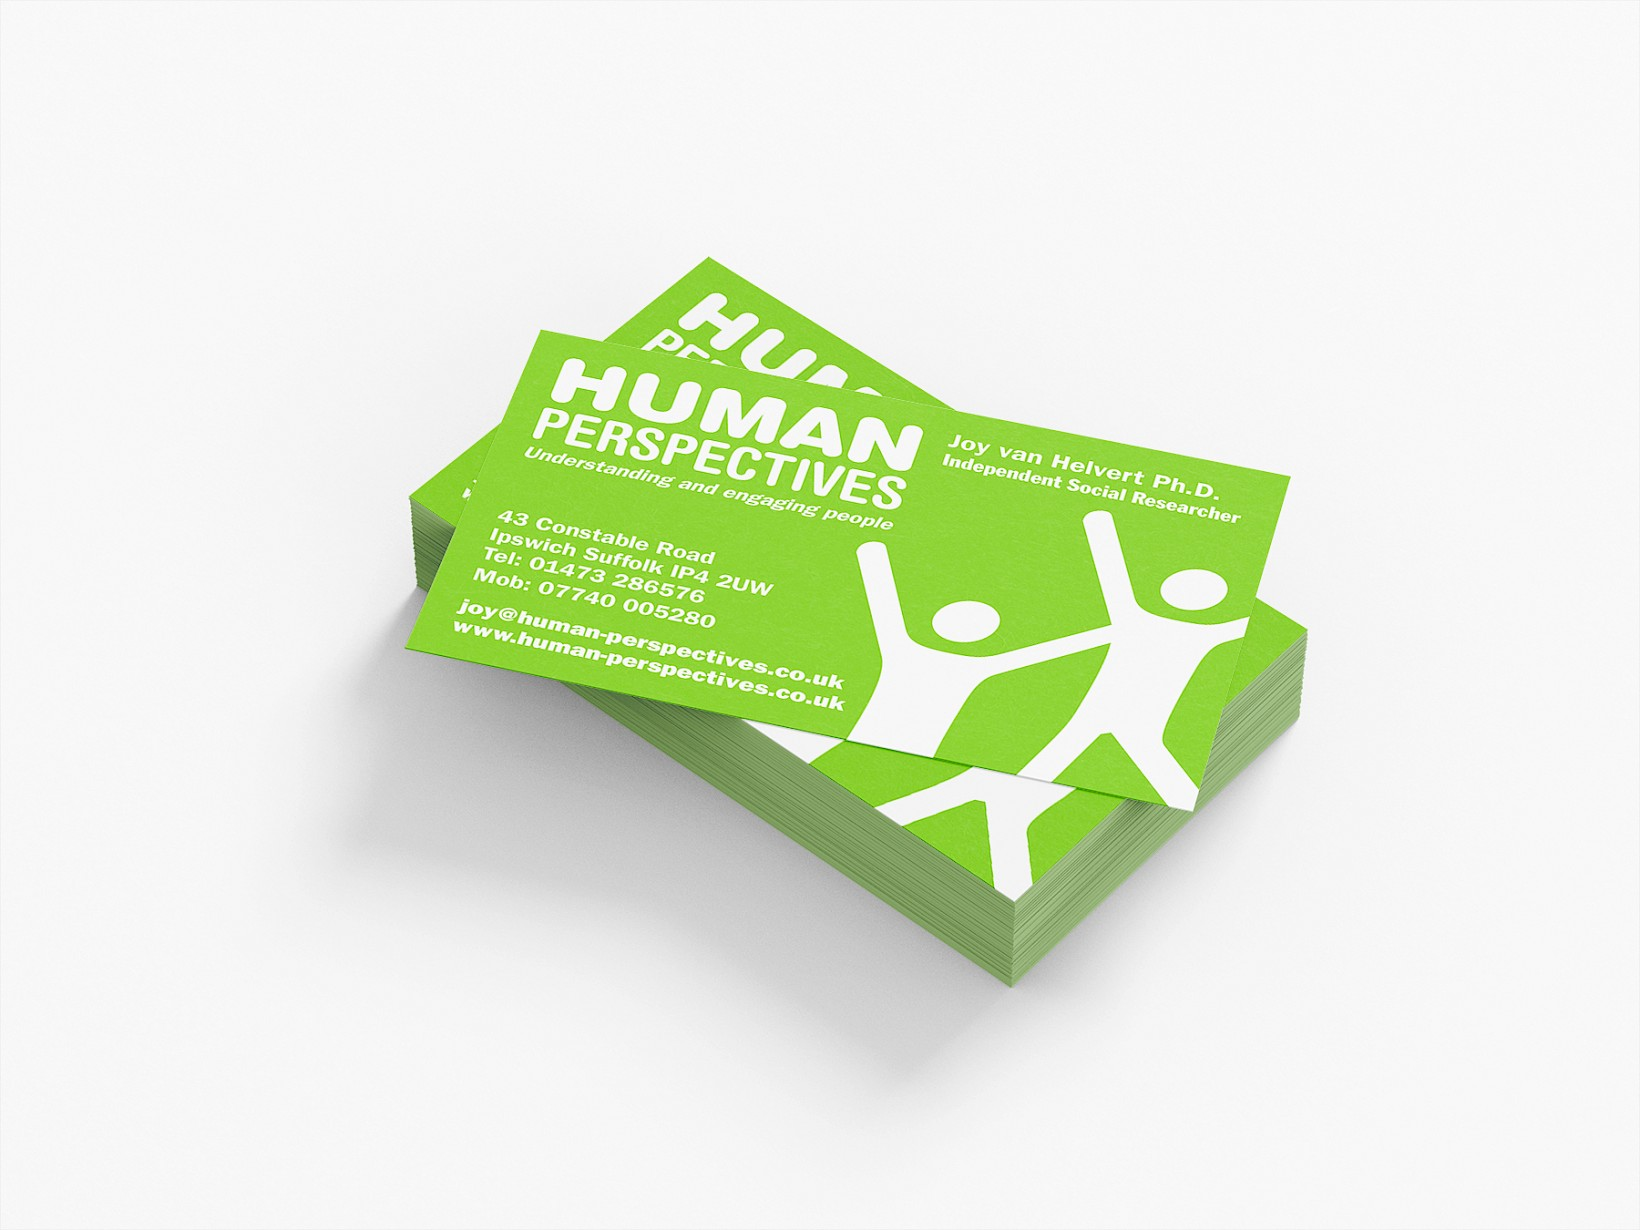 Human Perspectives Cards